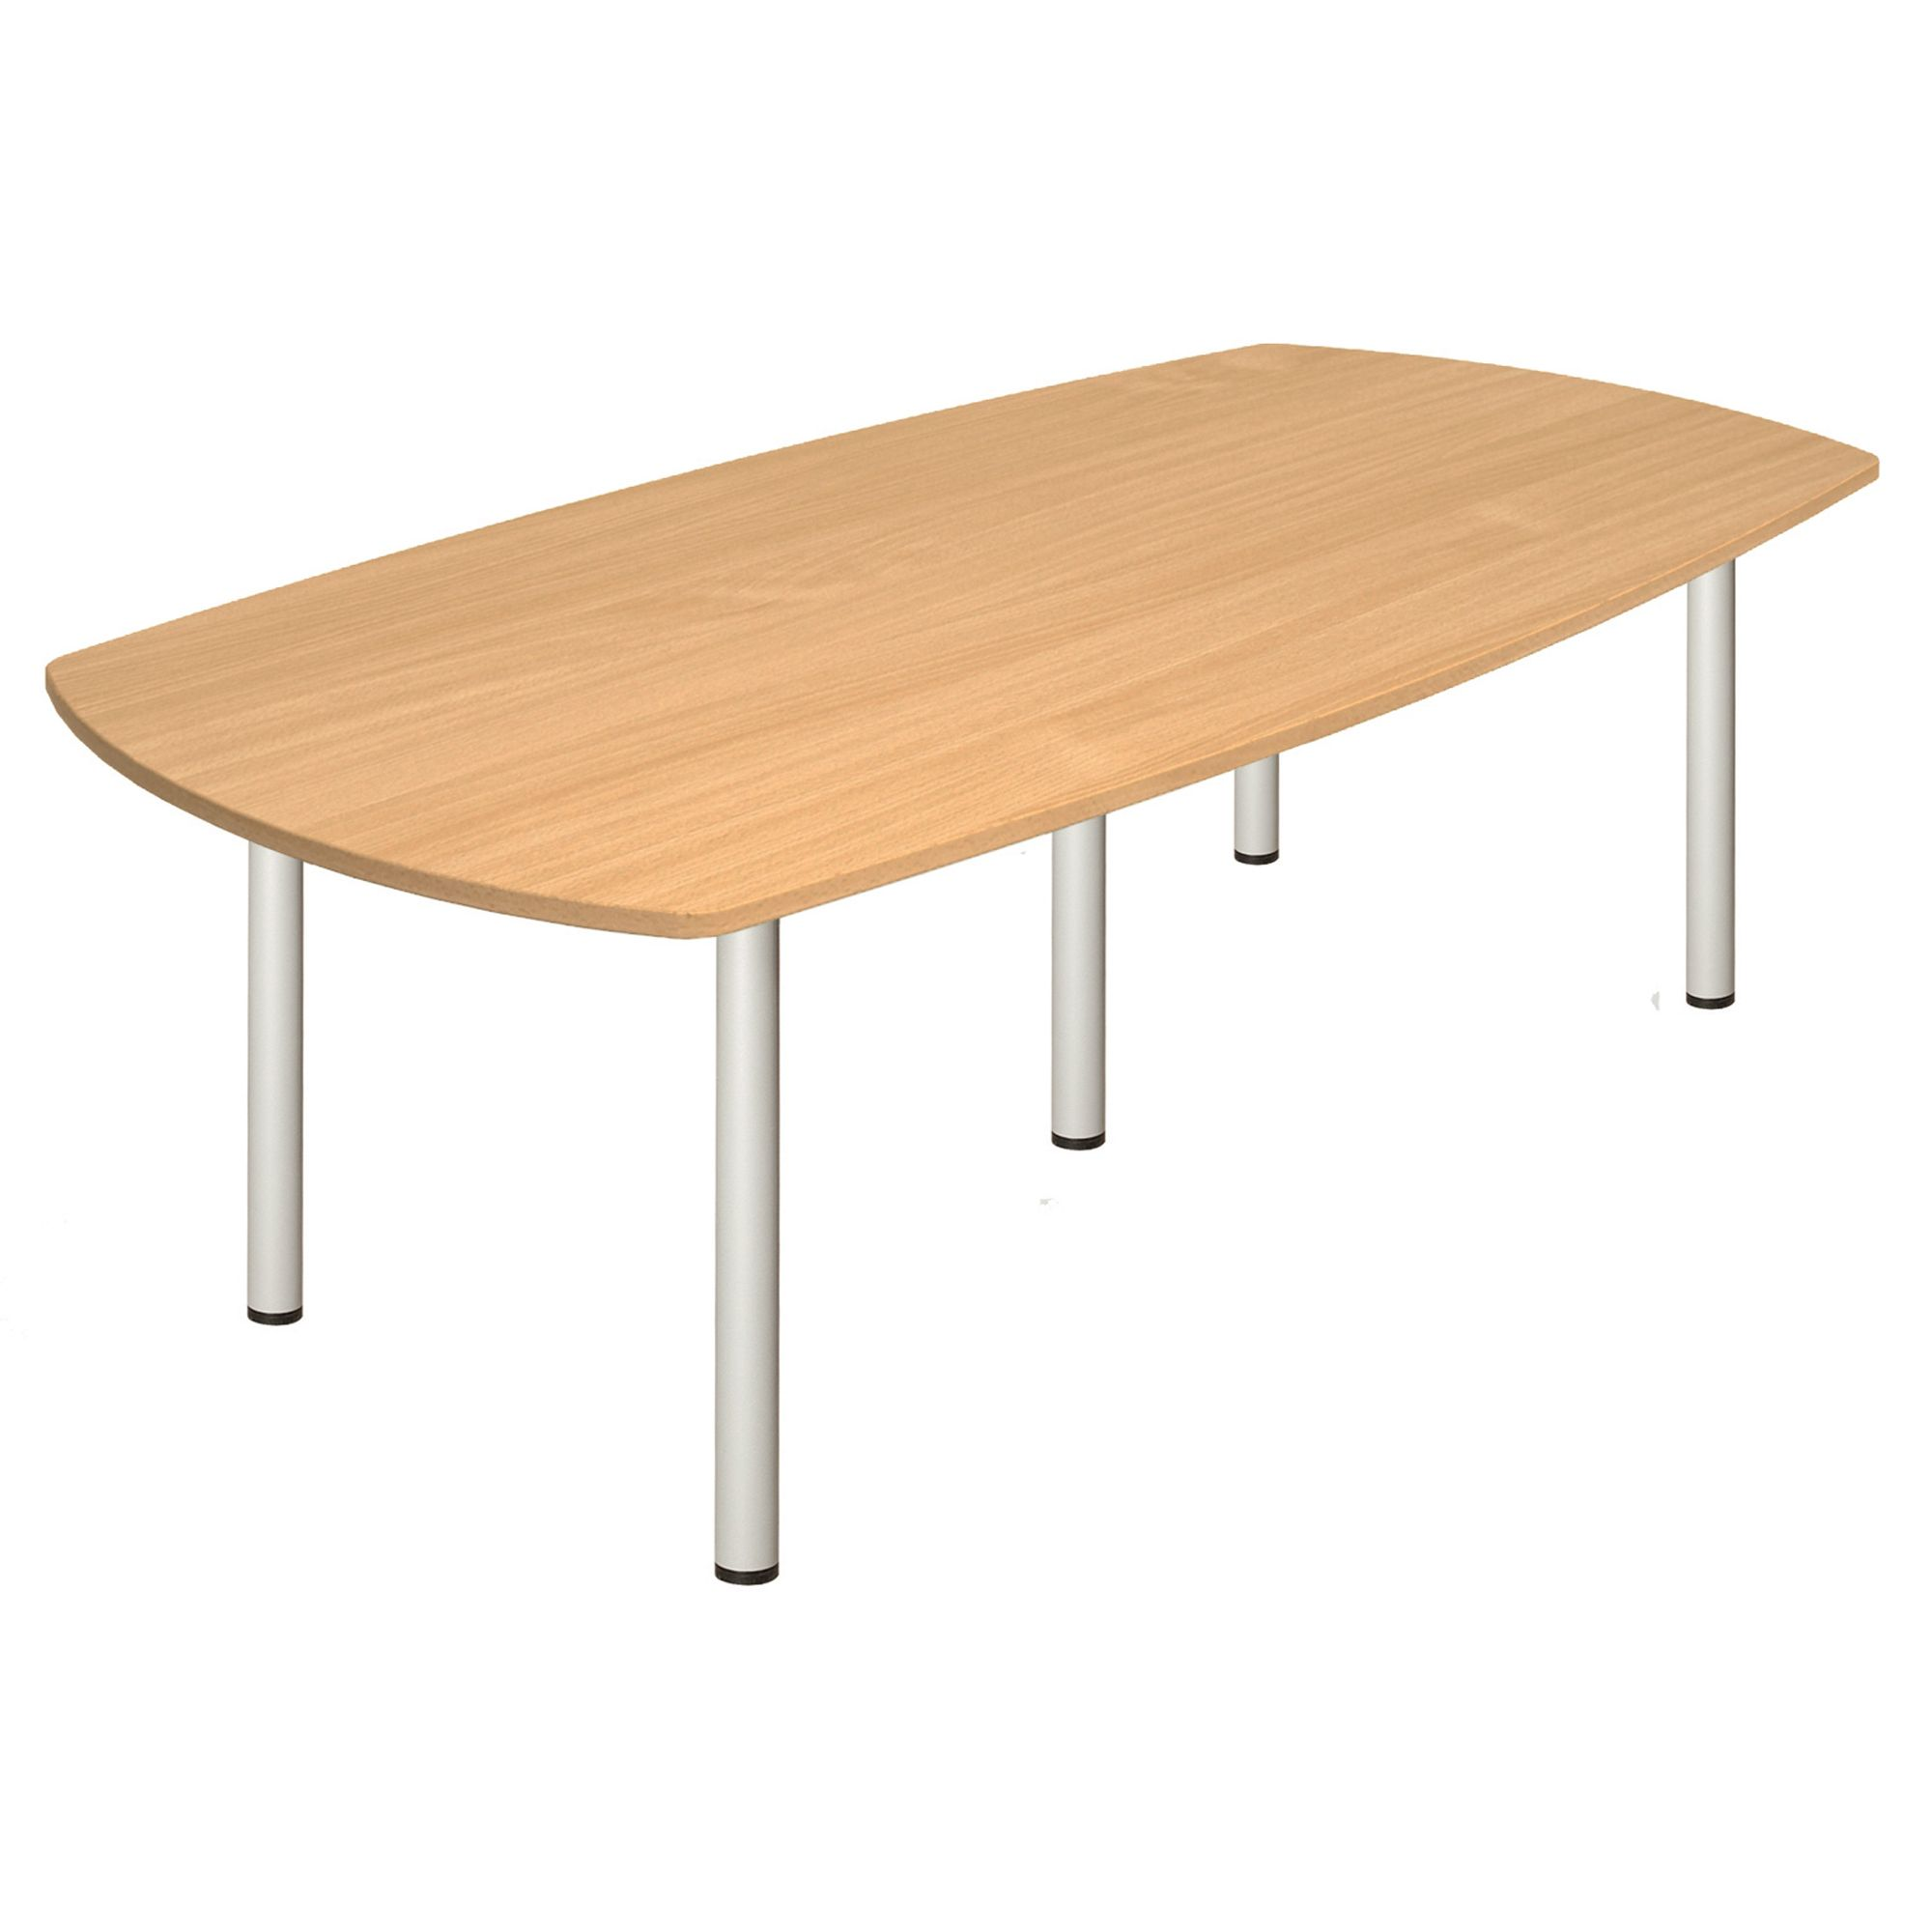 Large Boardroom Table HSI Office Furniture New Office Furniture - Large boardroom table